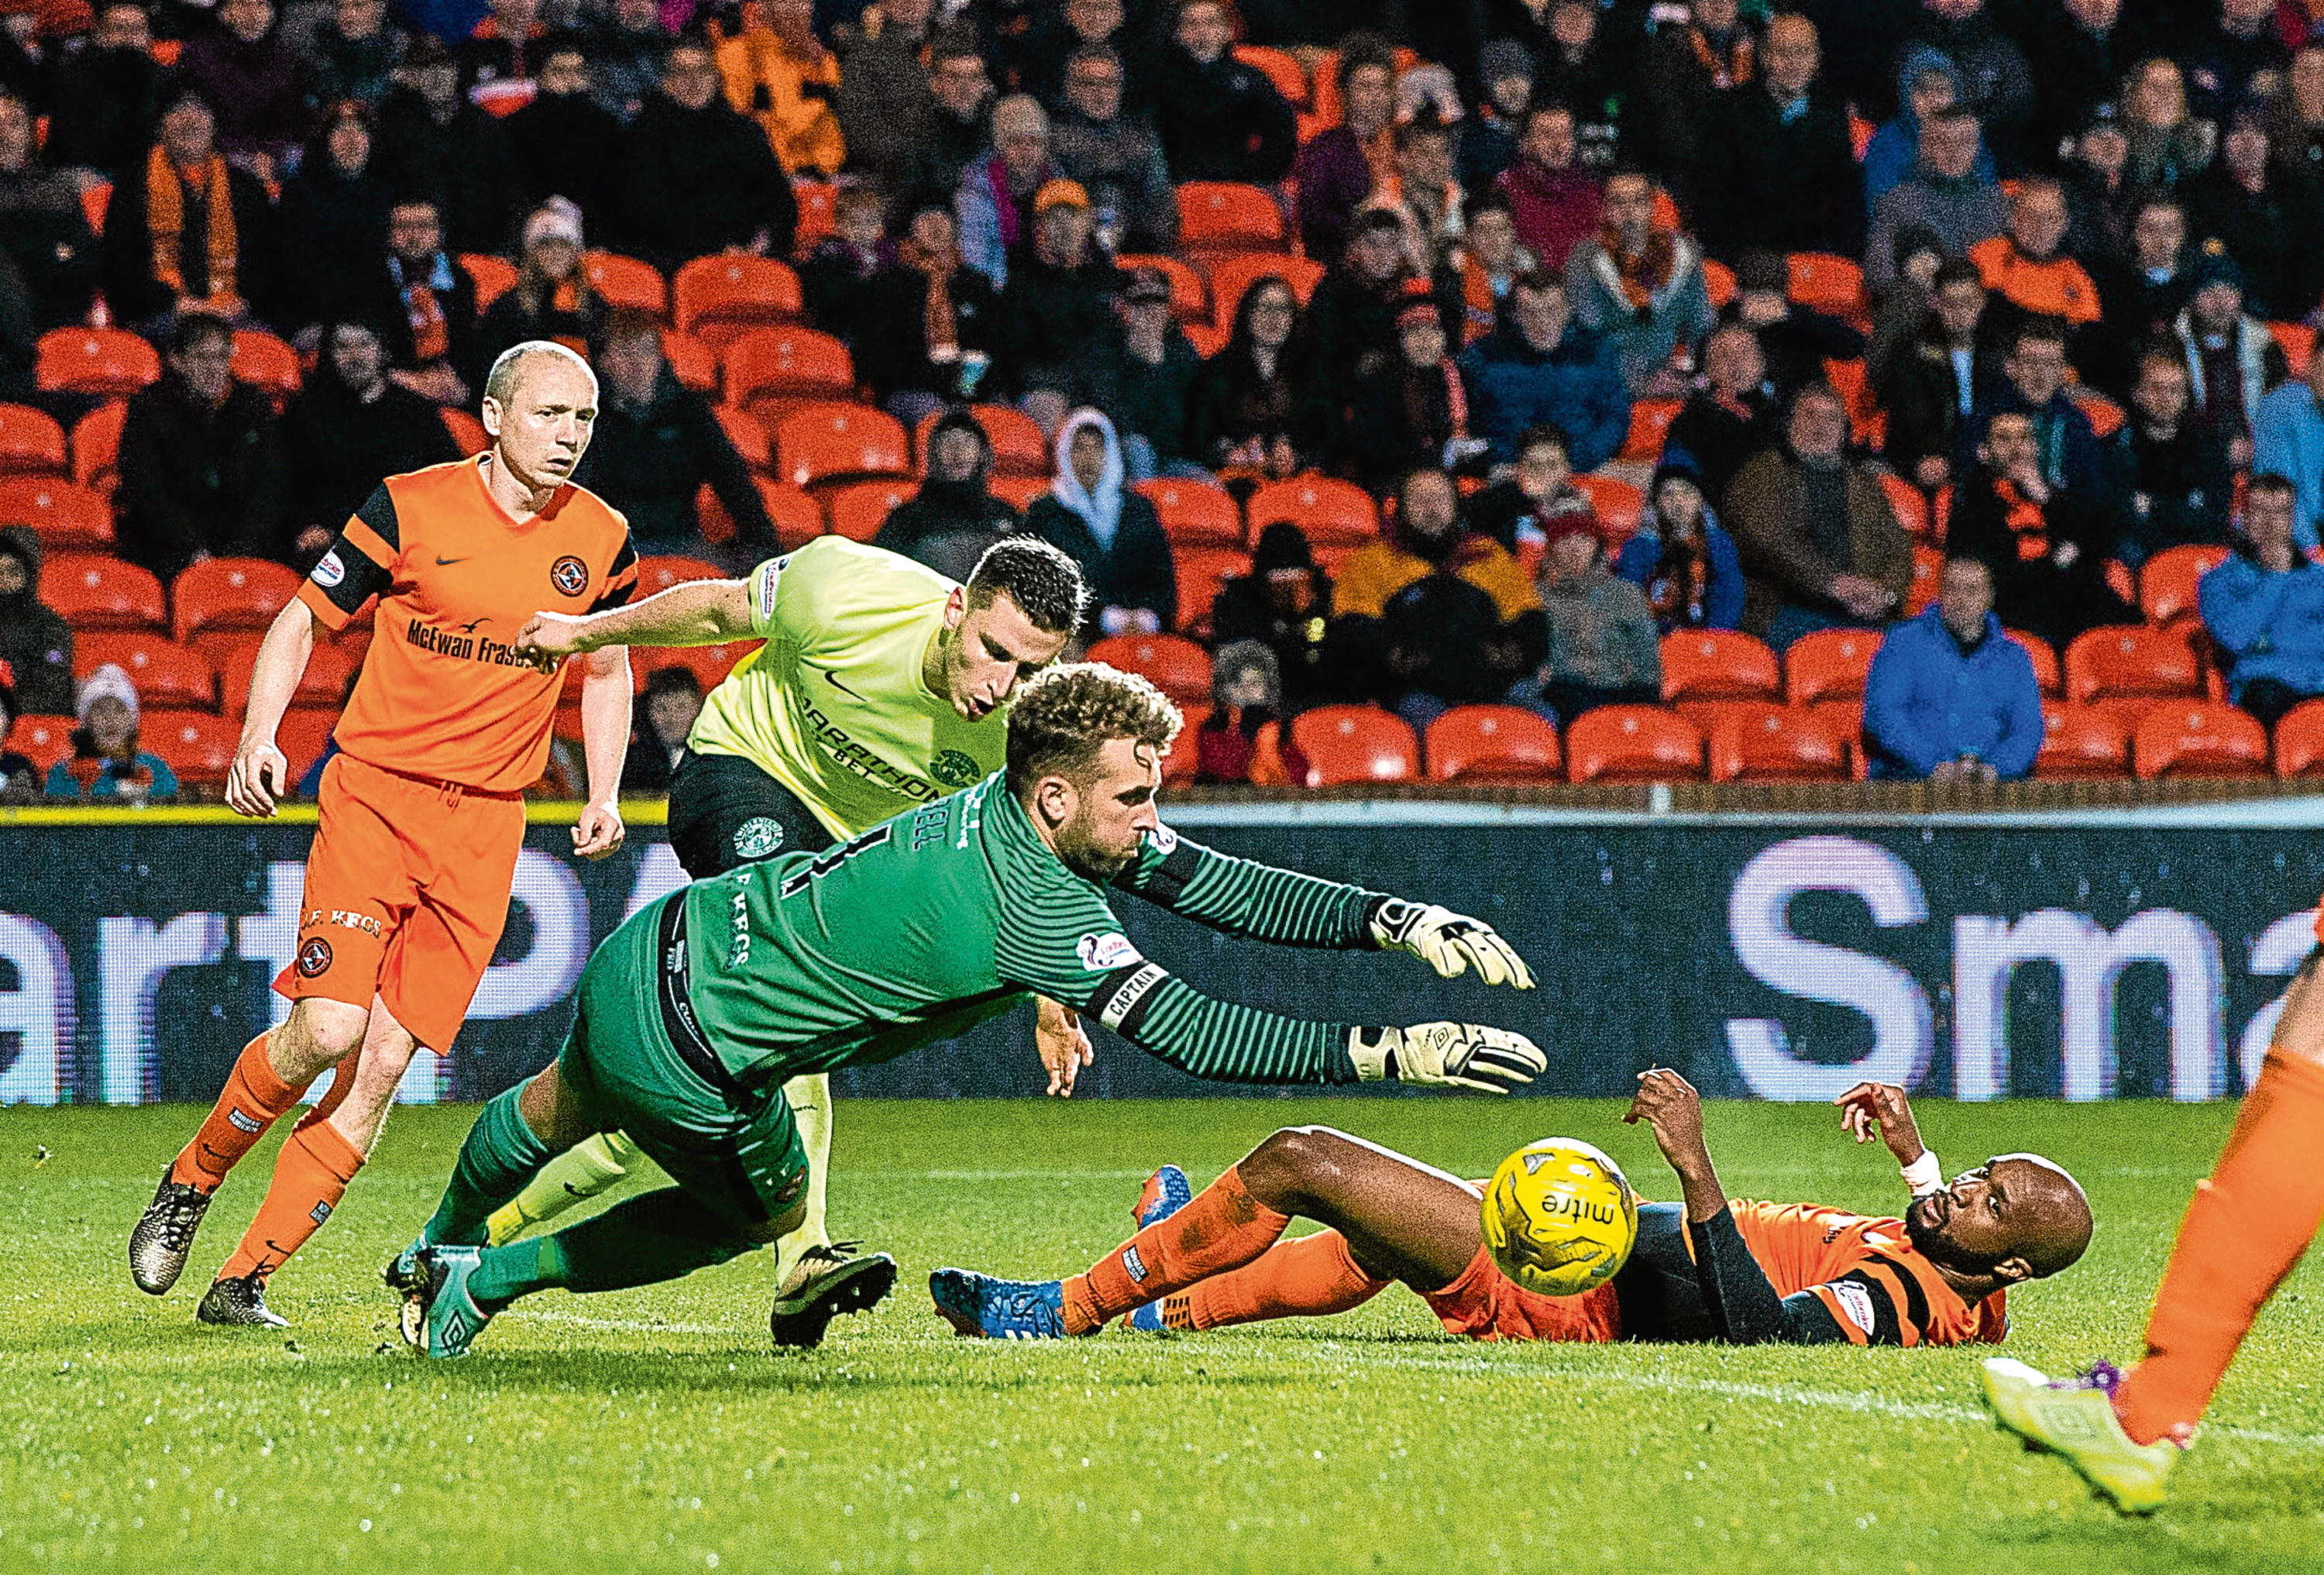 Dundee United have a tough spell ahead with four away games in their next five Championship fixtures including a trip to Easter Road to face Hibs — the side the Tangerines beat 1-0 on Friday.